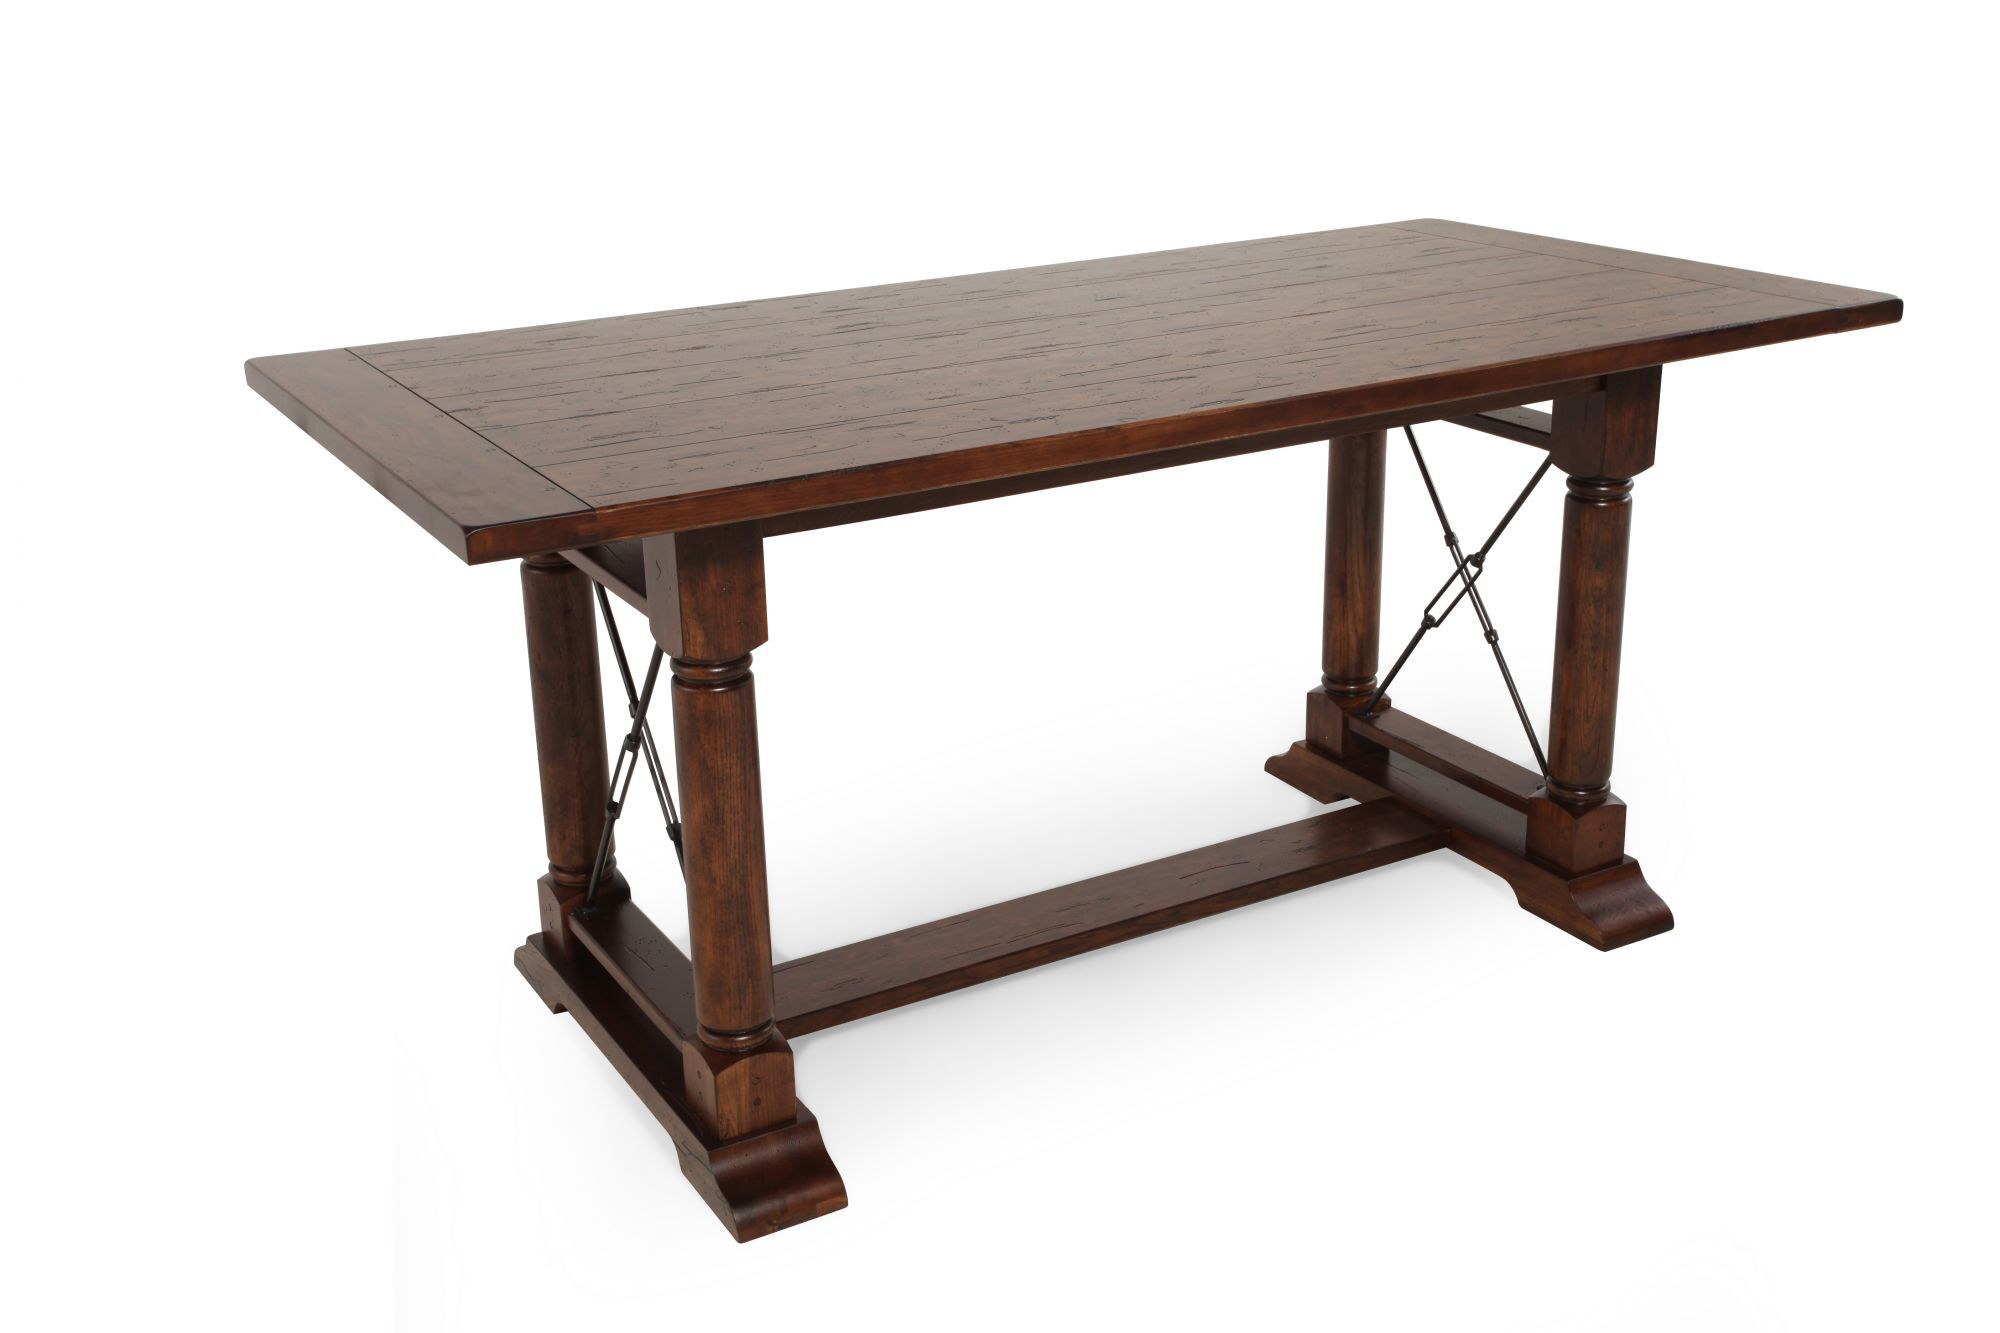 Heirlooms Rustic Oak Counter Height Table Mathis Brothers Furniture. Full  Resolution Pic, Nominally